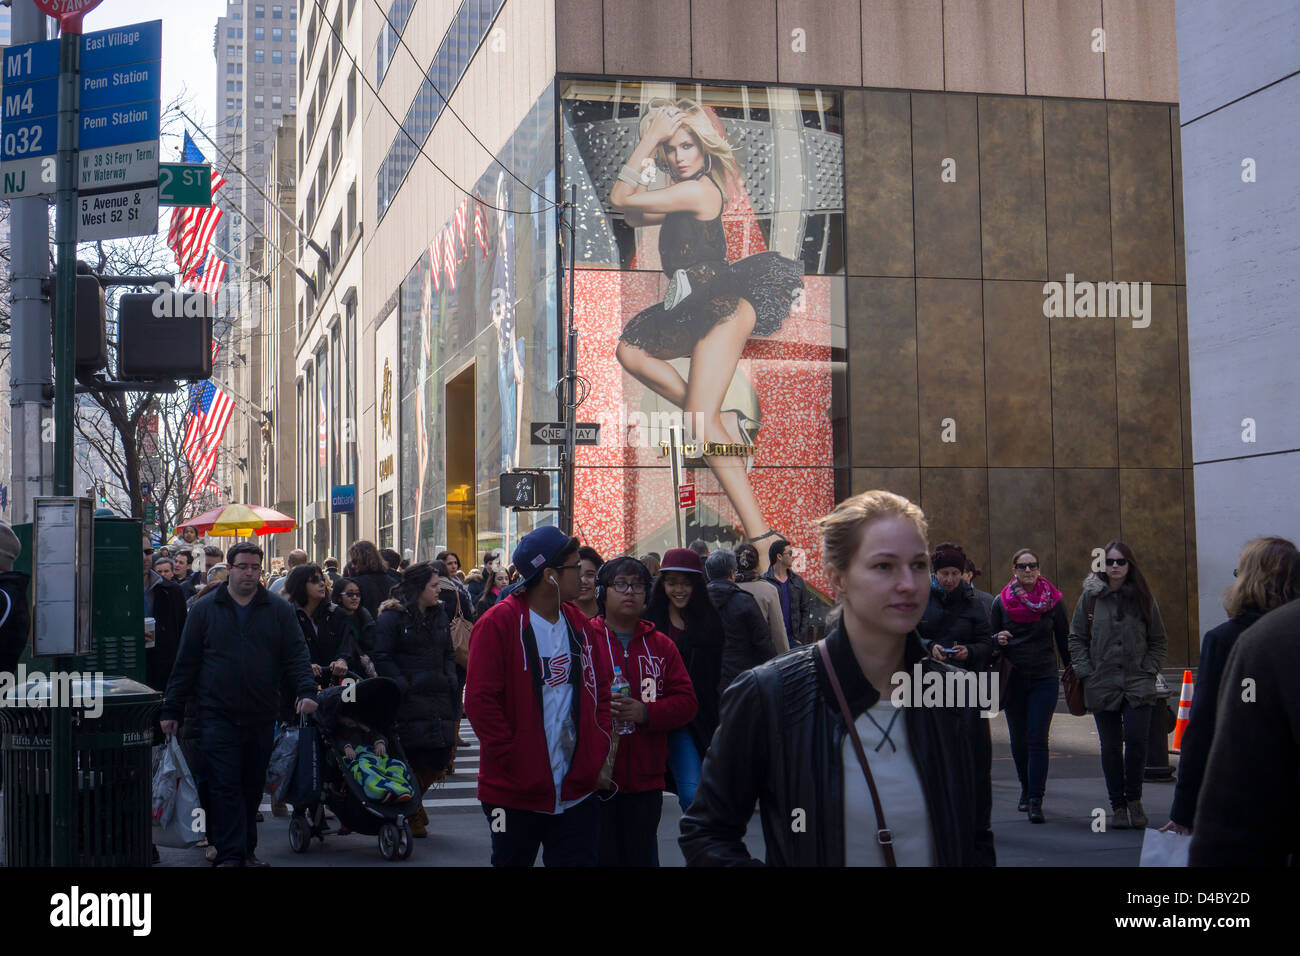 Shoppers pass a Juicy Couture store in the midtown Manhattan neighborhood of New York - Stock Image